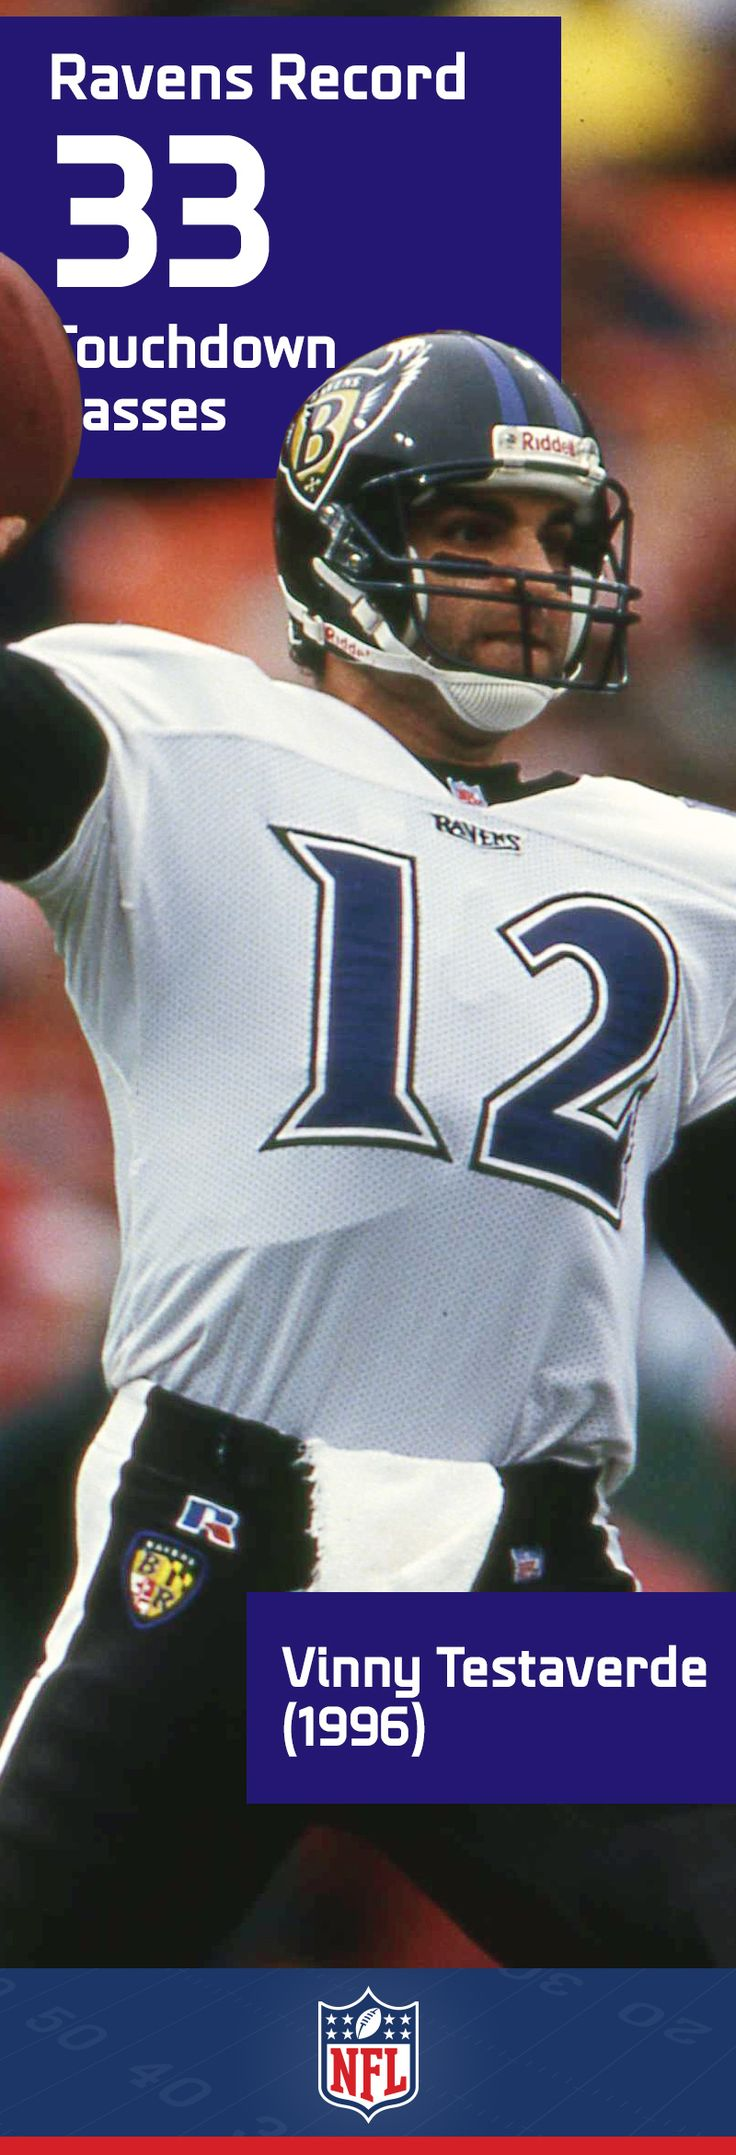 94 best images about Baltimore Ravens on Pinterest ...